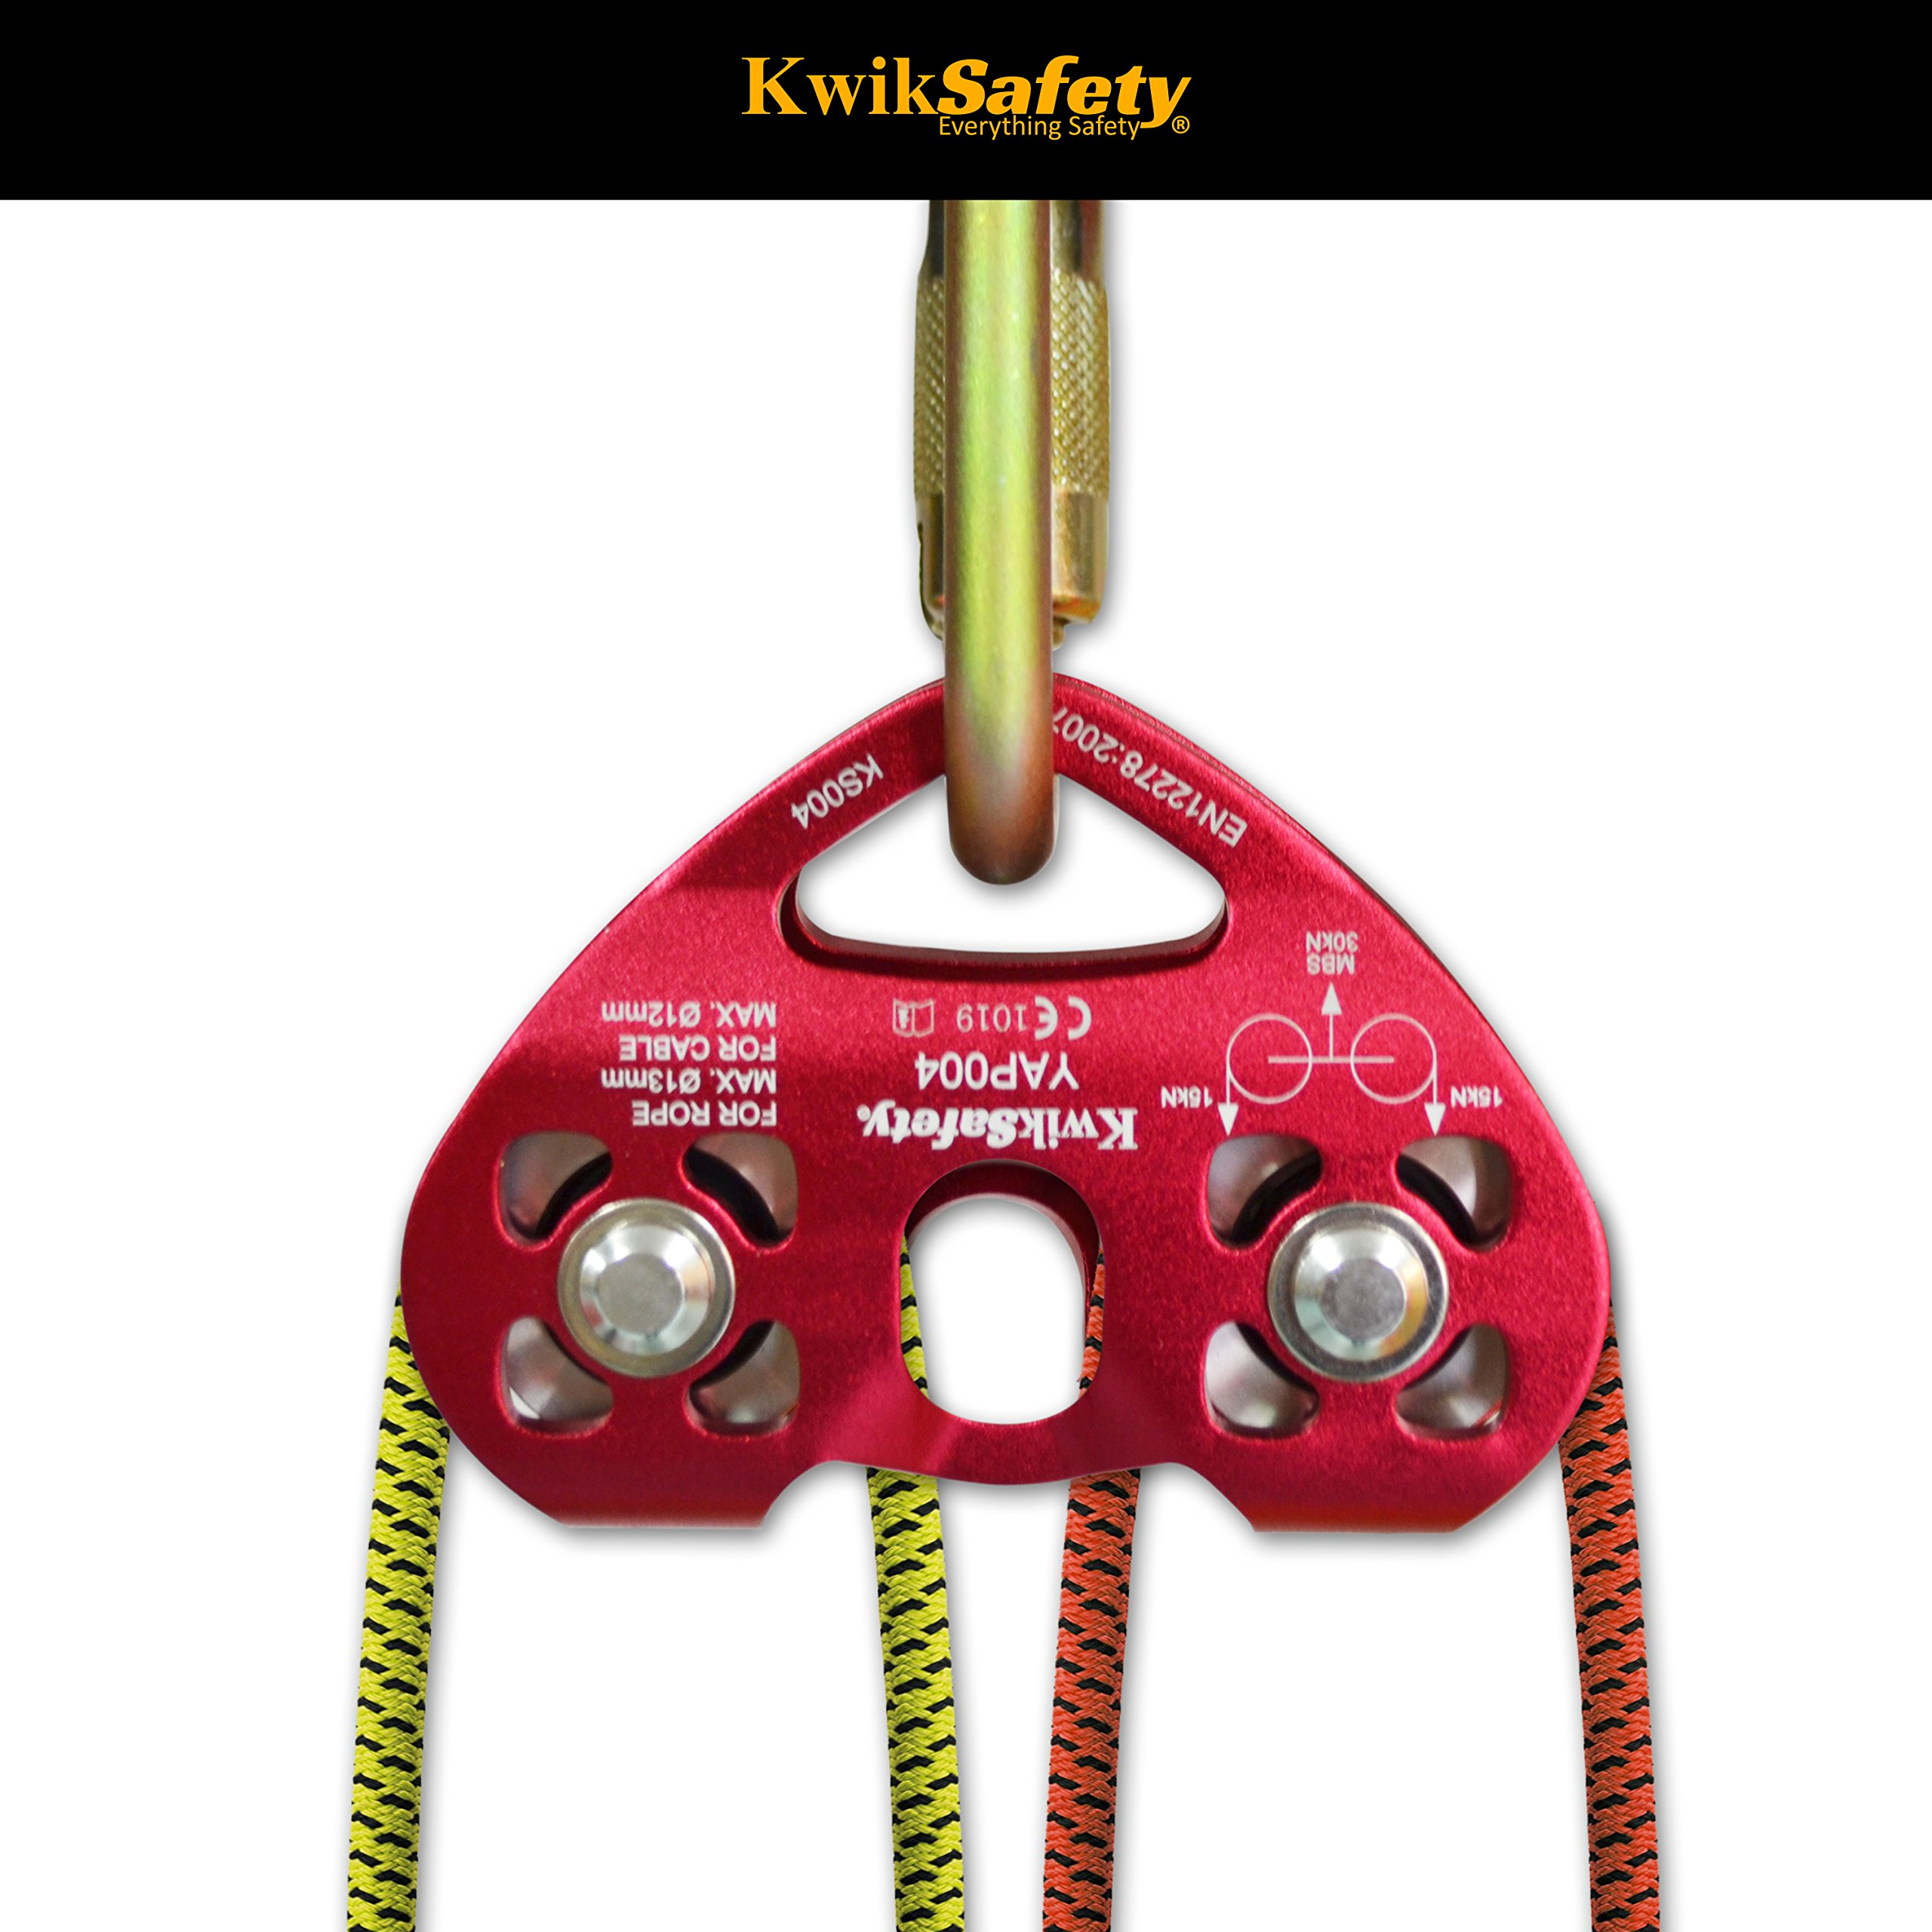 KwikSafety CRUISE | Tandem Pulley | Heavy Duty Lightweight Aluminum Alloy Climbing Gear | Min. Breaking Load 30 kN ROPE & CABLE | EN & CE Certified | High Performance Smooth Tension Zip Line System